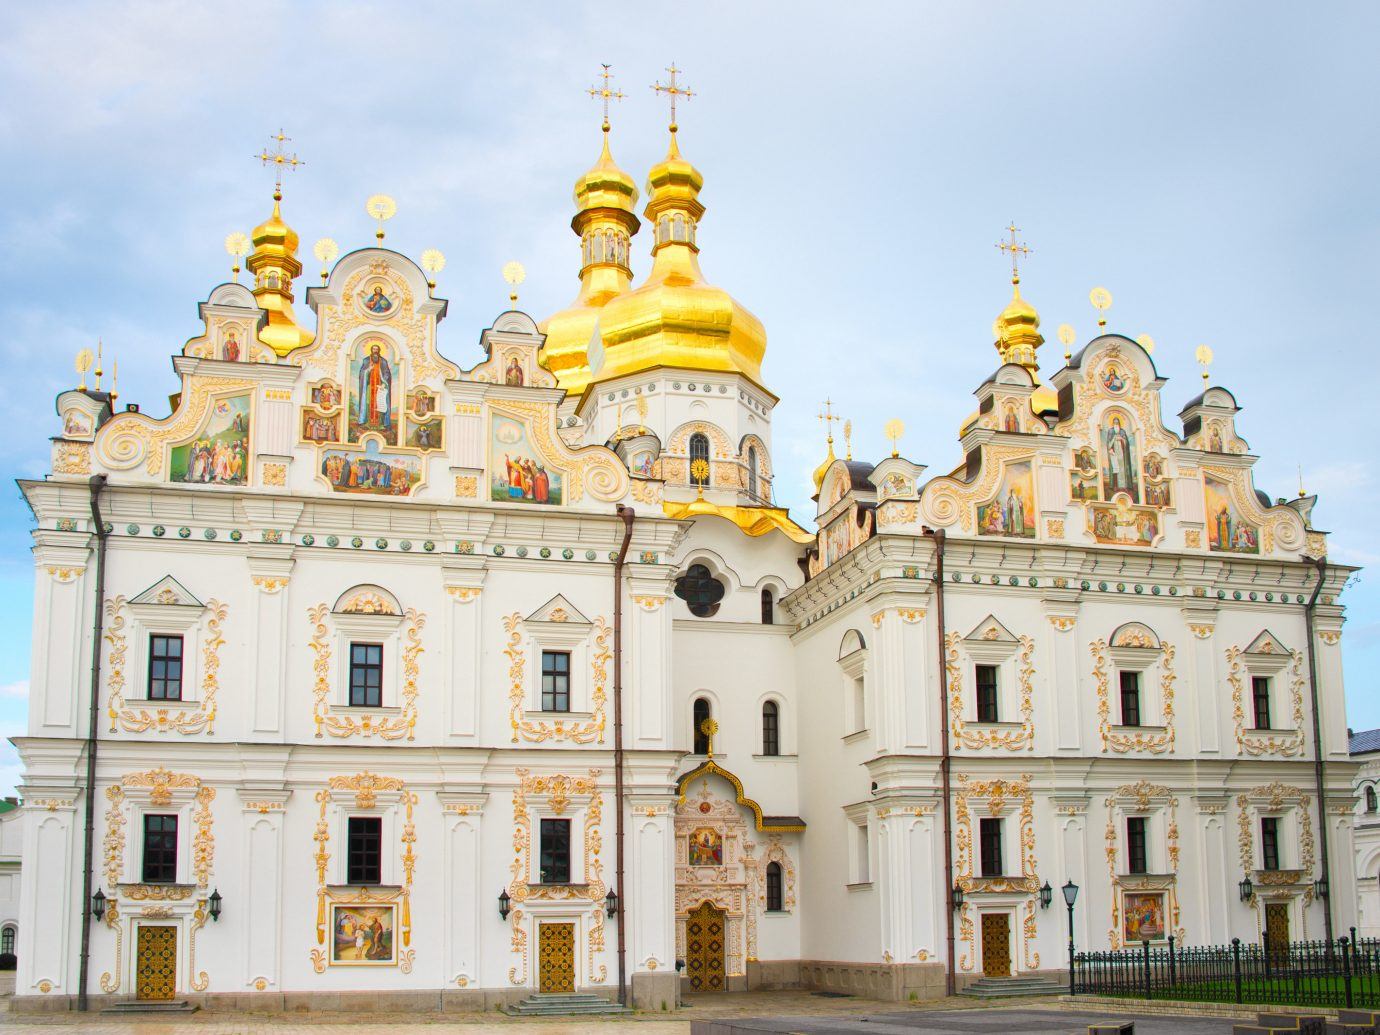 Trip Ideas outdoor landmark historic site building palace classical architecture Architecture facade byzantine architecture place of worship basilica plaza big cathedral monastery government building square stone